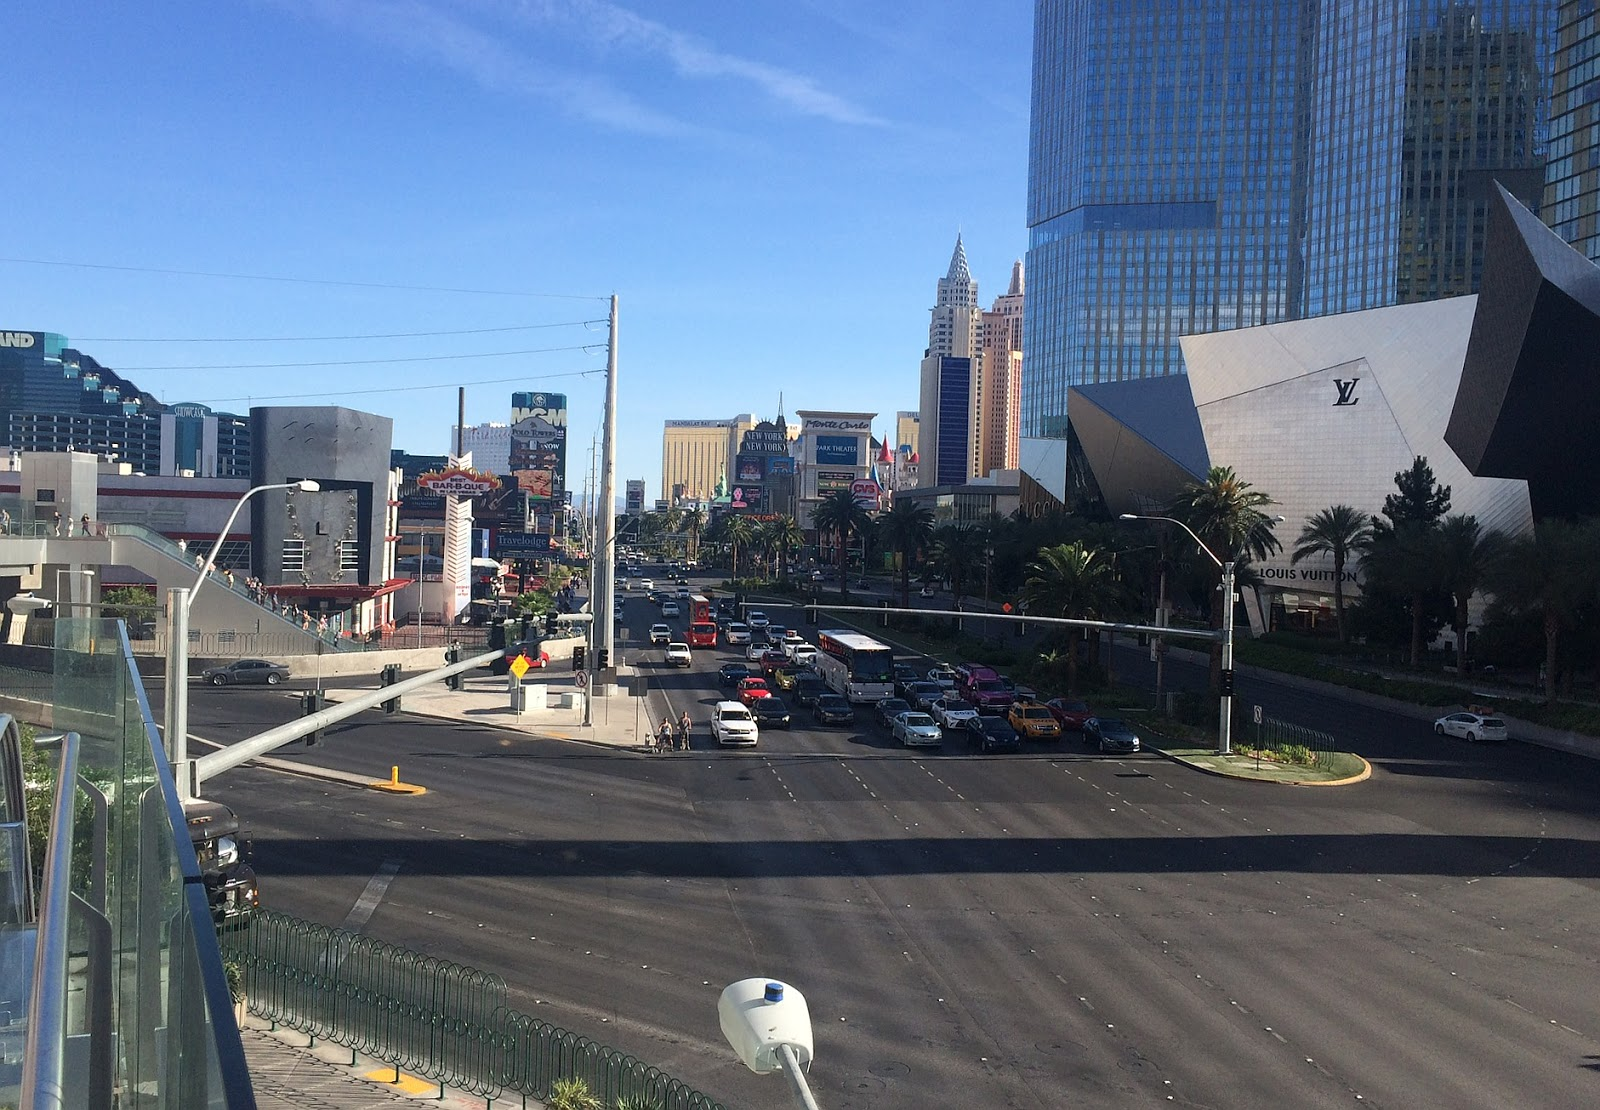 Las Vegas - view of the city